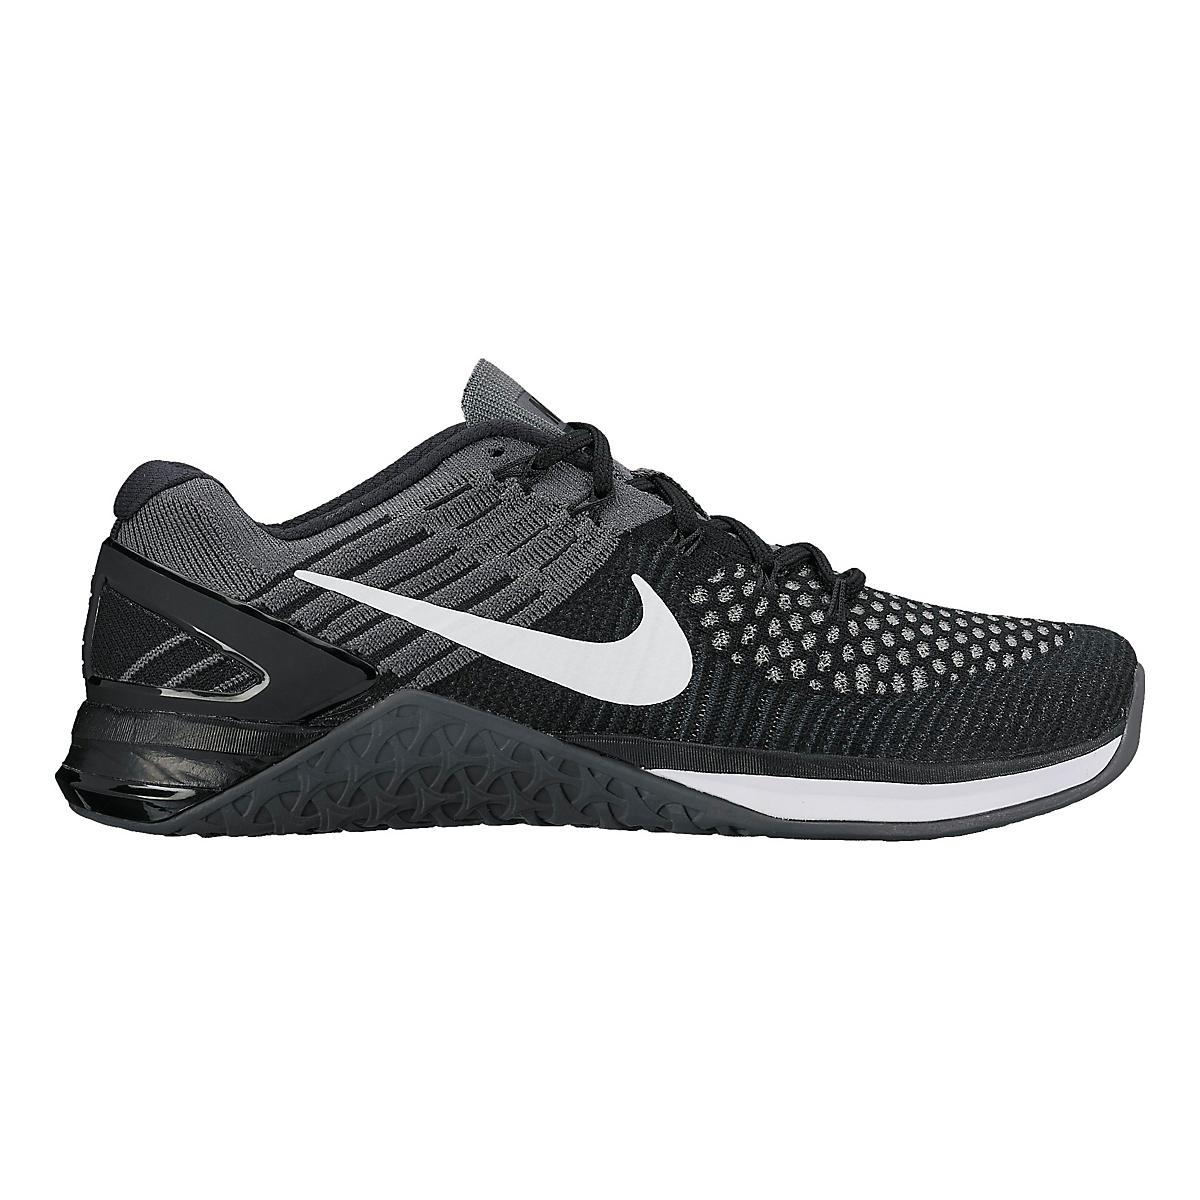 check out 34d07 b3052 Womens Nike MetCon DSX Flyknit Cross Training Shoe at Road Runner Sports